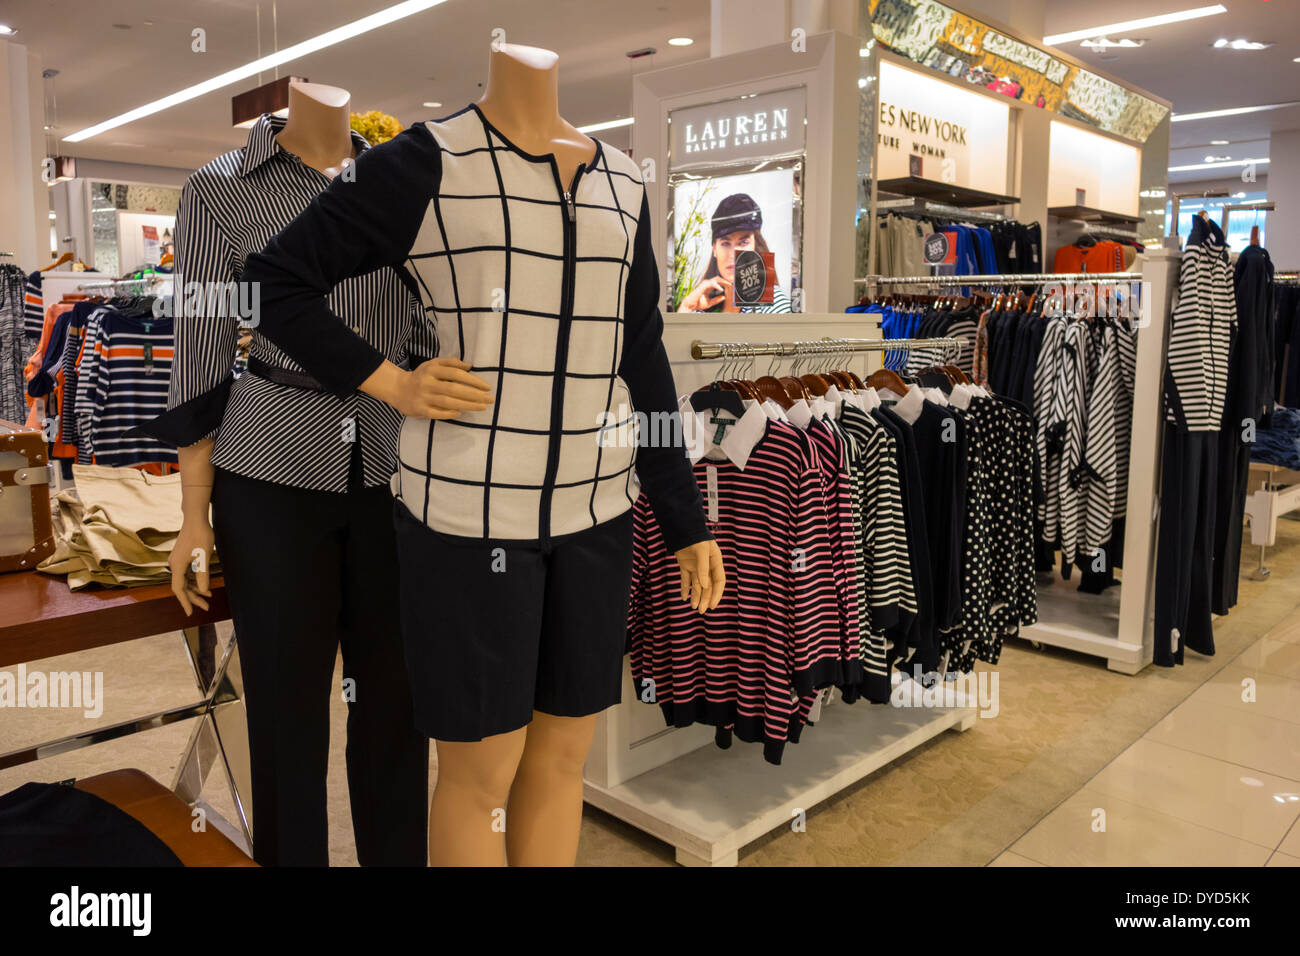 e4cc84788271 Orlando Florida The Mall at Millenia shopping sale fashion display Macy s  Department Store women s clothing racks tops shirts blouses mannequin Ralph